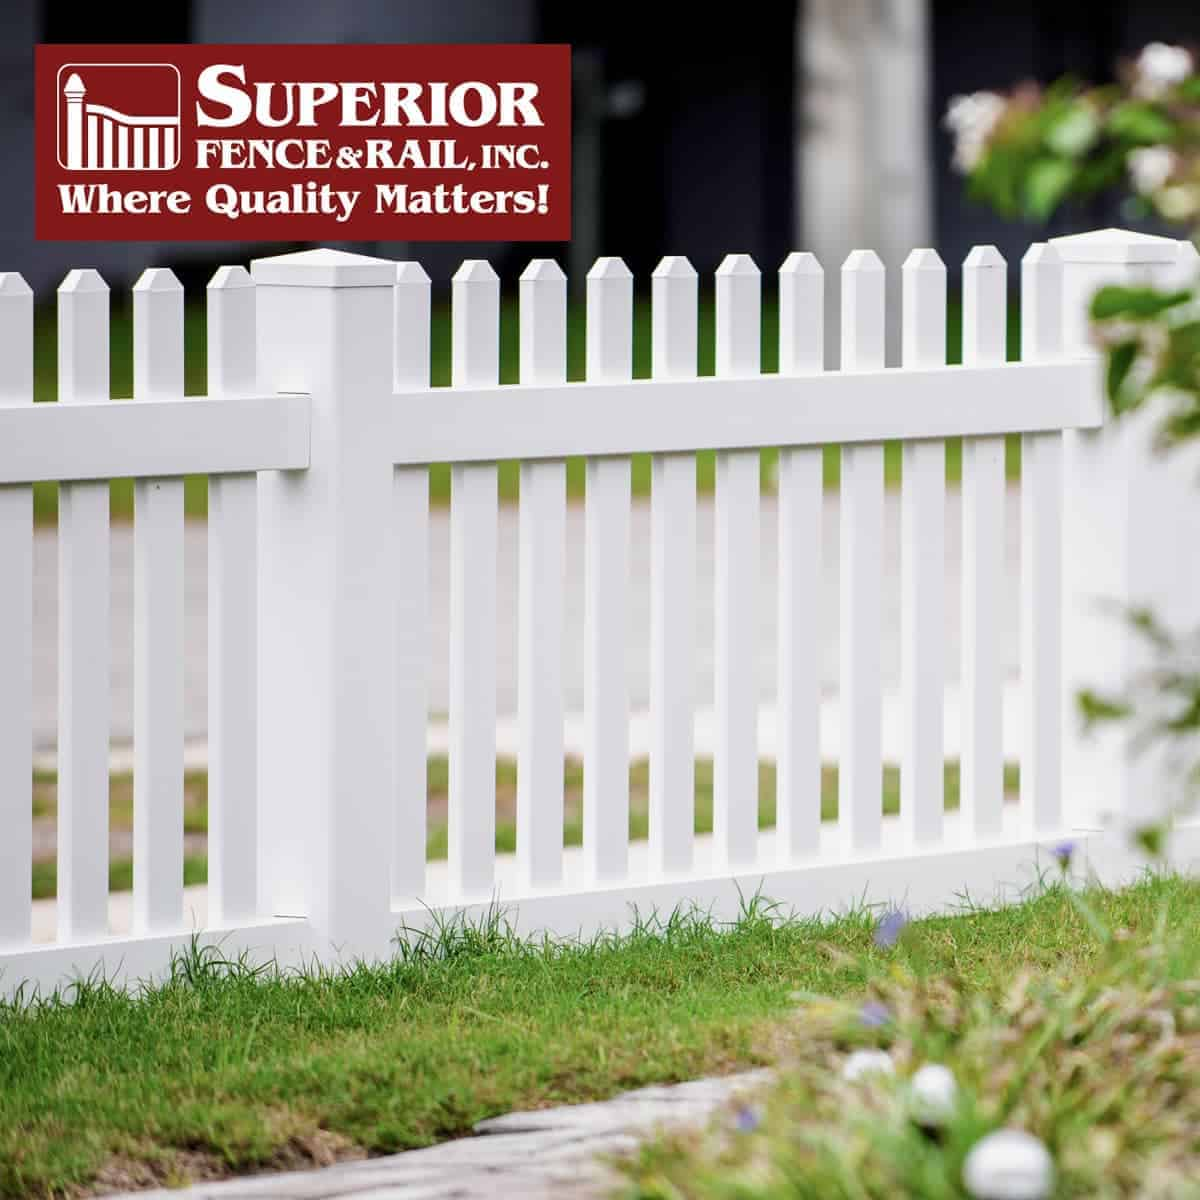 Chesterfield fence company contractor